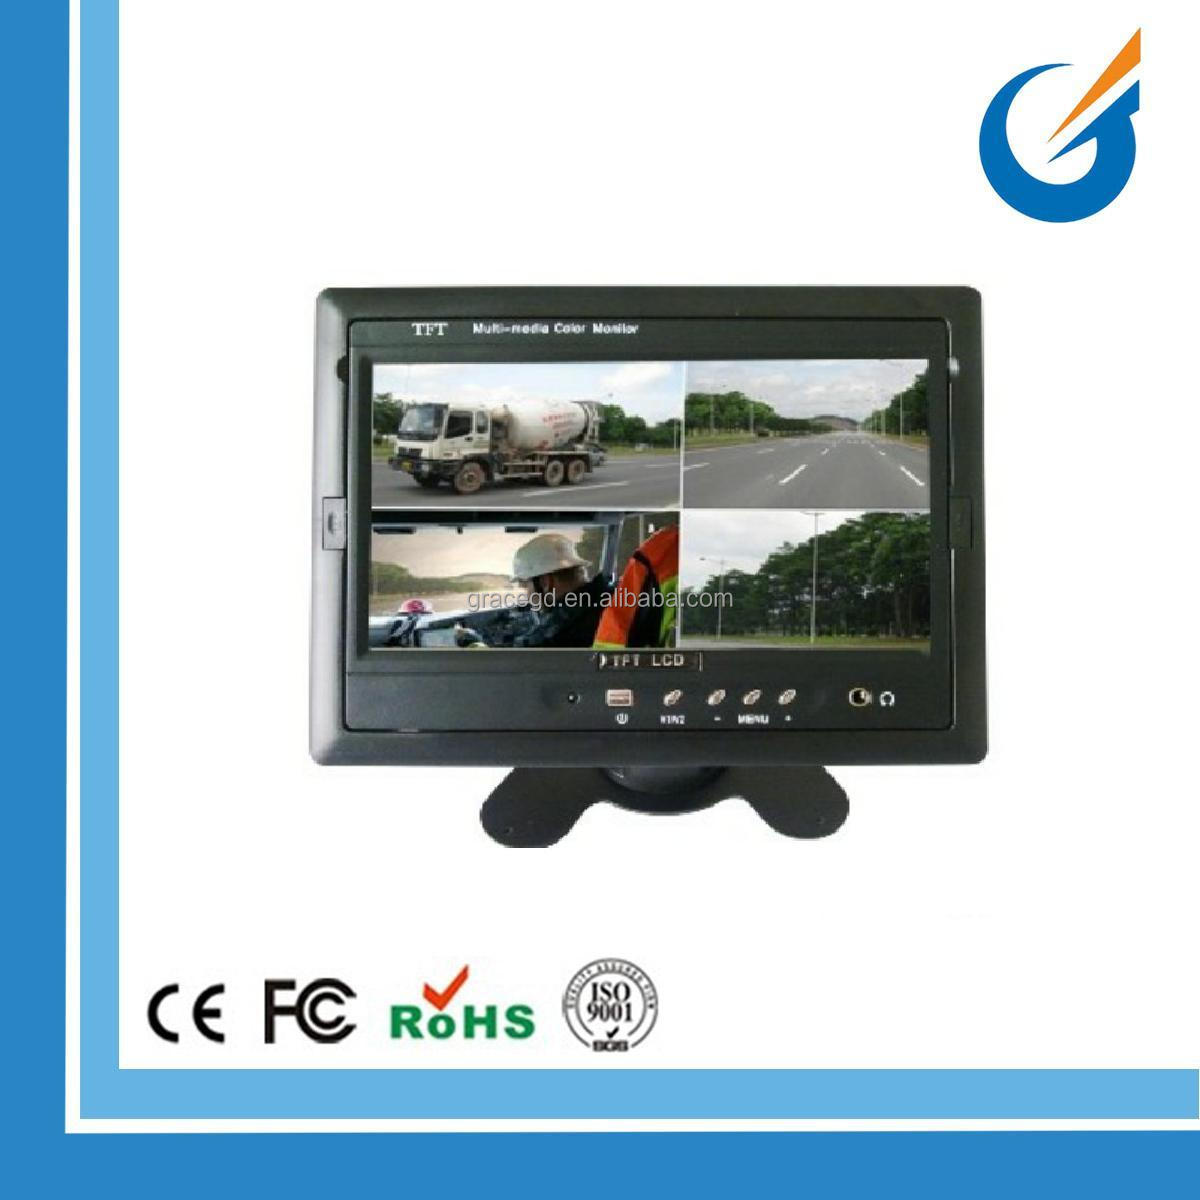 Good Quality Car Backup Mirror Camera Car 7 Inch TFT LCD Quad Monitor for Parking